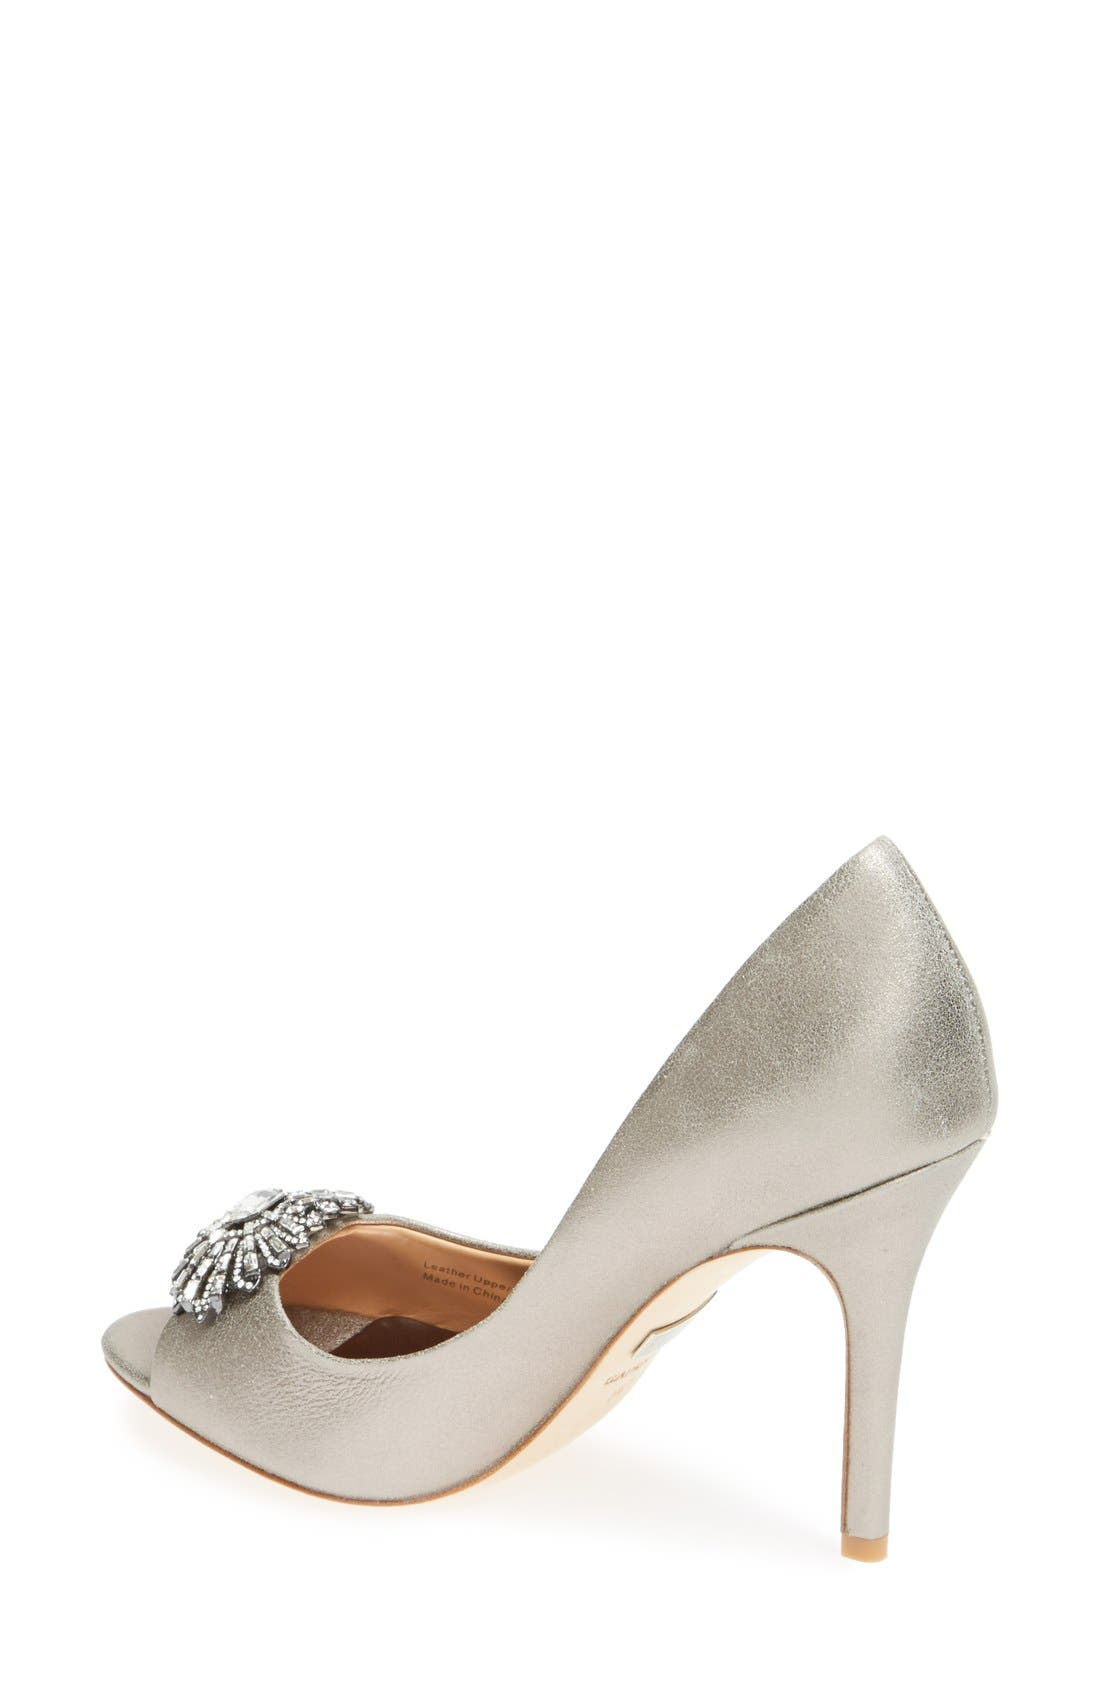 Alternate Image 2  - Badgley Mischka 'Hollie' Pump (Women)